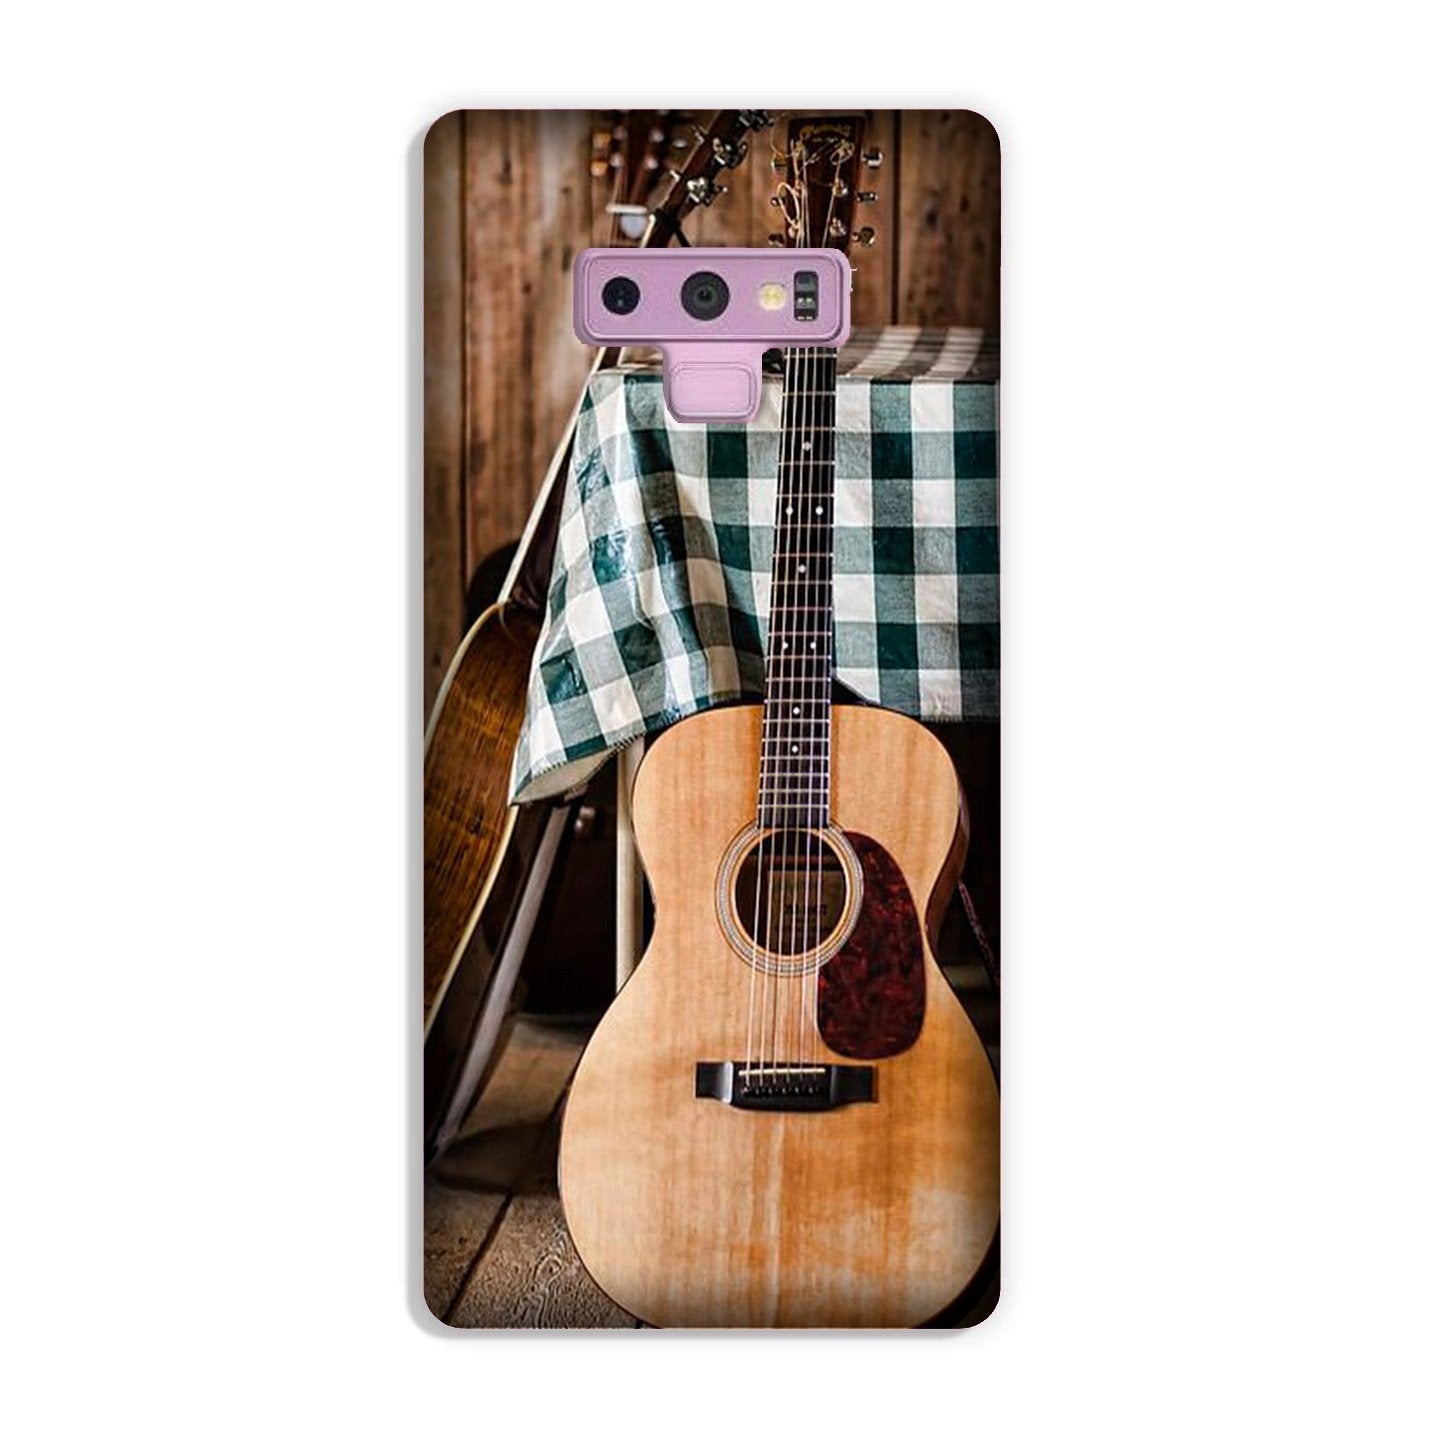 Guitar2 Case for Galaxy Note 9